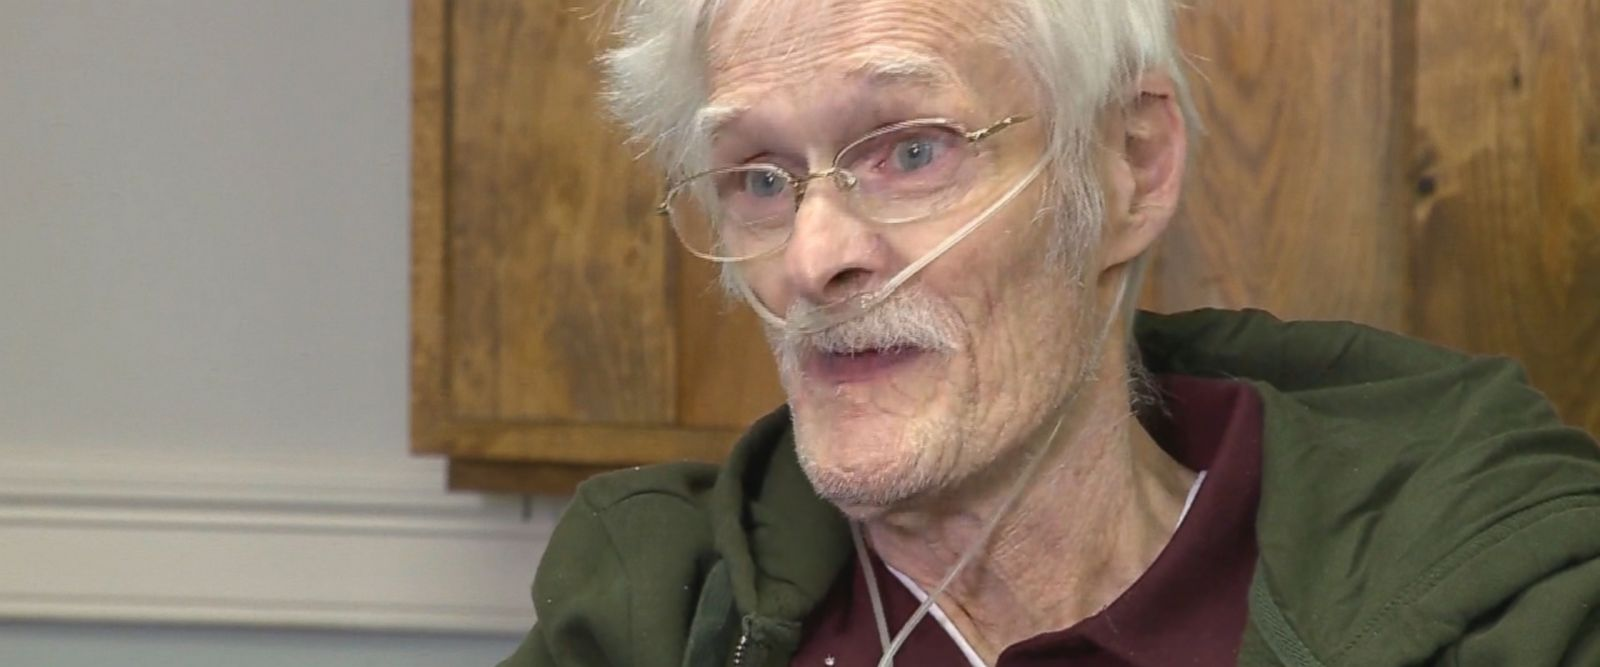 The 75-year-old driver said his heart stopped and doctors had to bring him back to life, according to ABC affiliate WCVB.